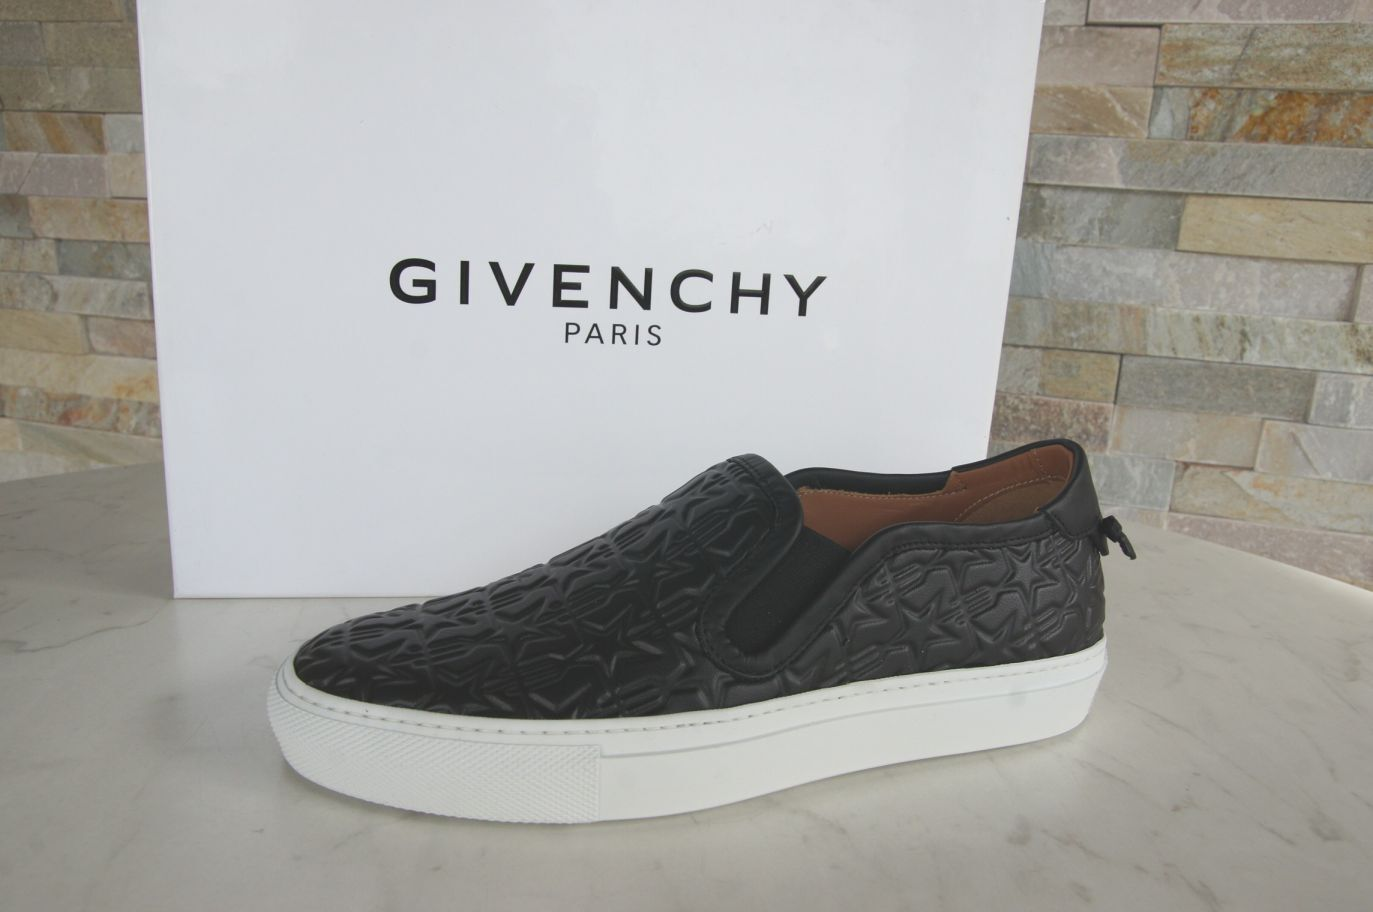 Orig Mokassins GIVENCHY PARIS Gr 36,5 Slipper Mokassins Orig Slip-On Schuhe schwarz NEU ca0586